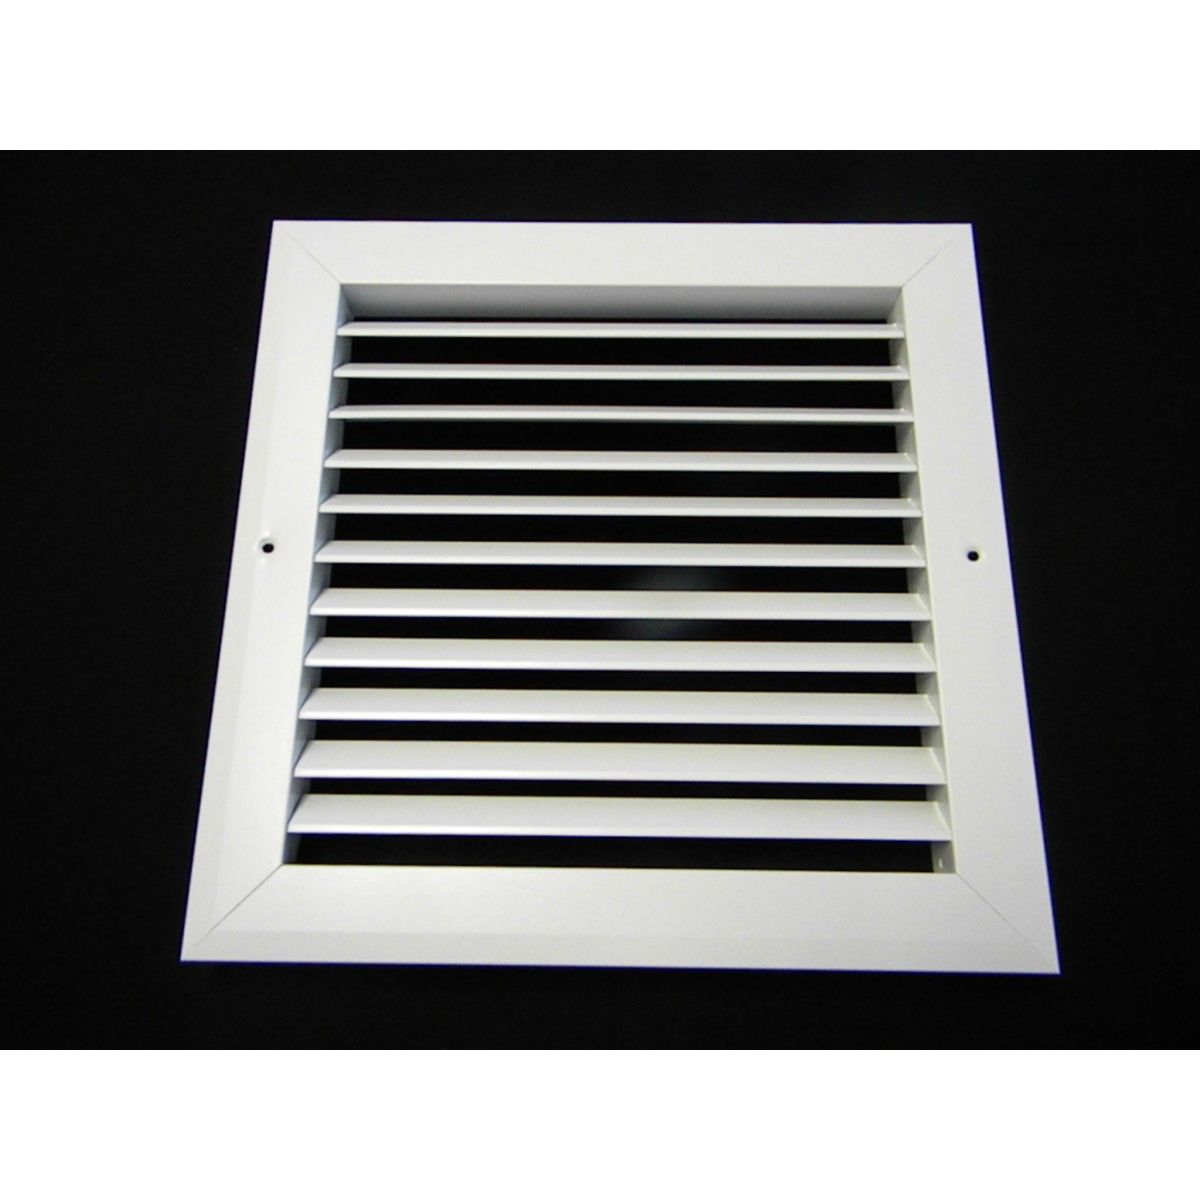 #444164 16x16 Return Custom Grille In Grilles And Registers  Highly Rated 3269 Grills And Registers wallpapers with 1200x1200 px on helpvideos.info - Air Conditioners, Air Coolers and more